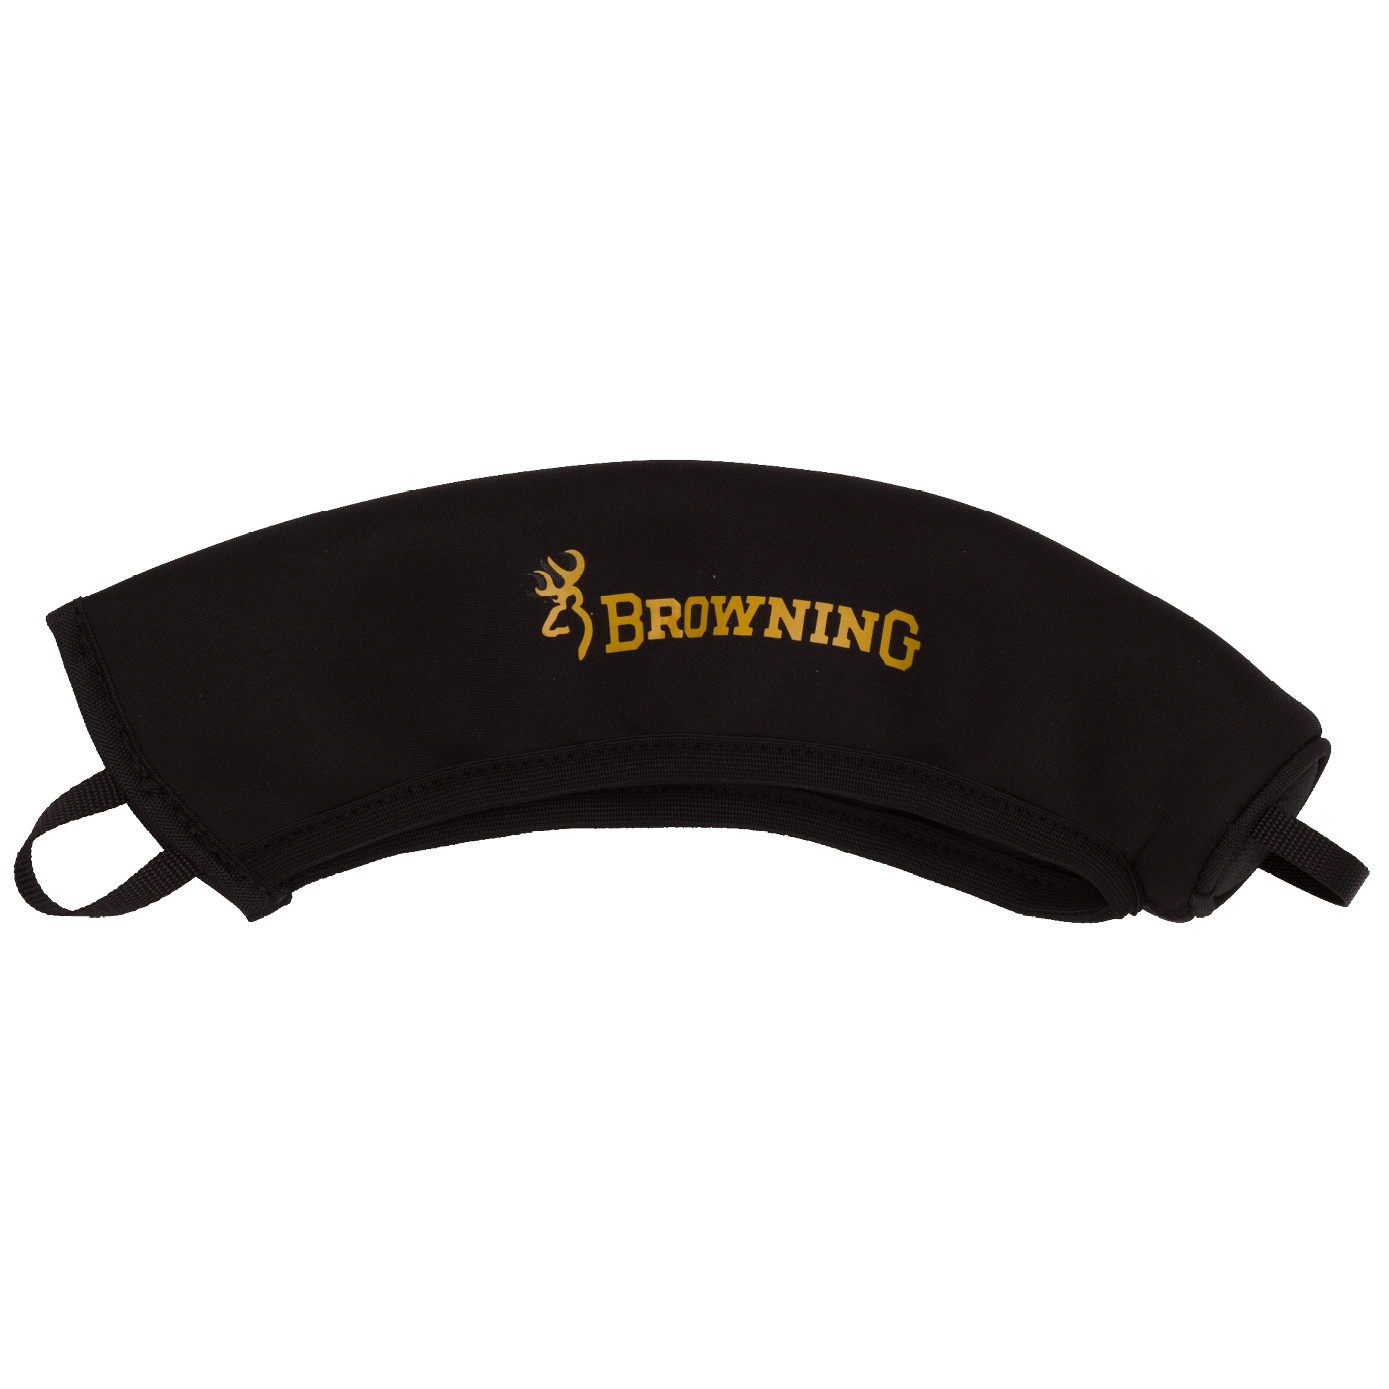 Browning Scope Cover 50mm